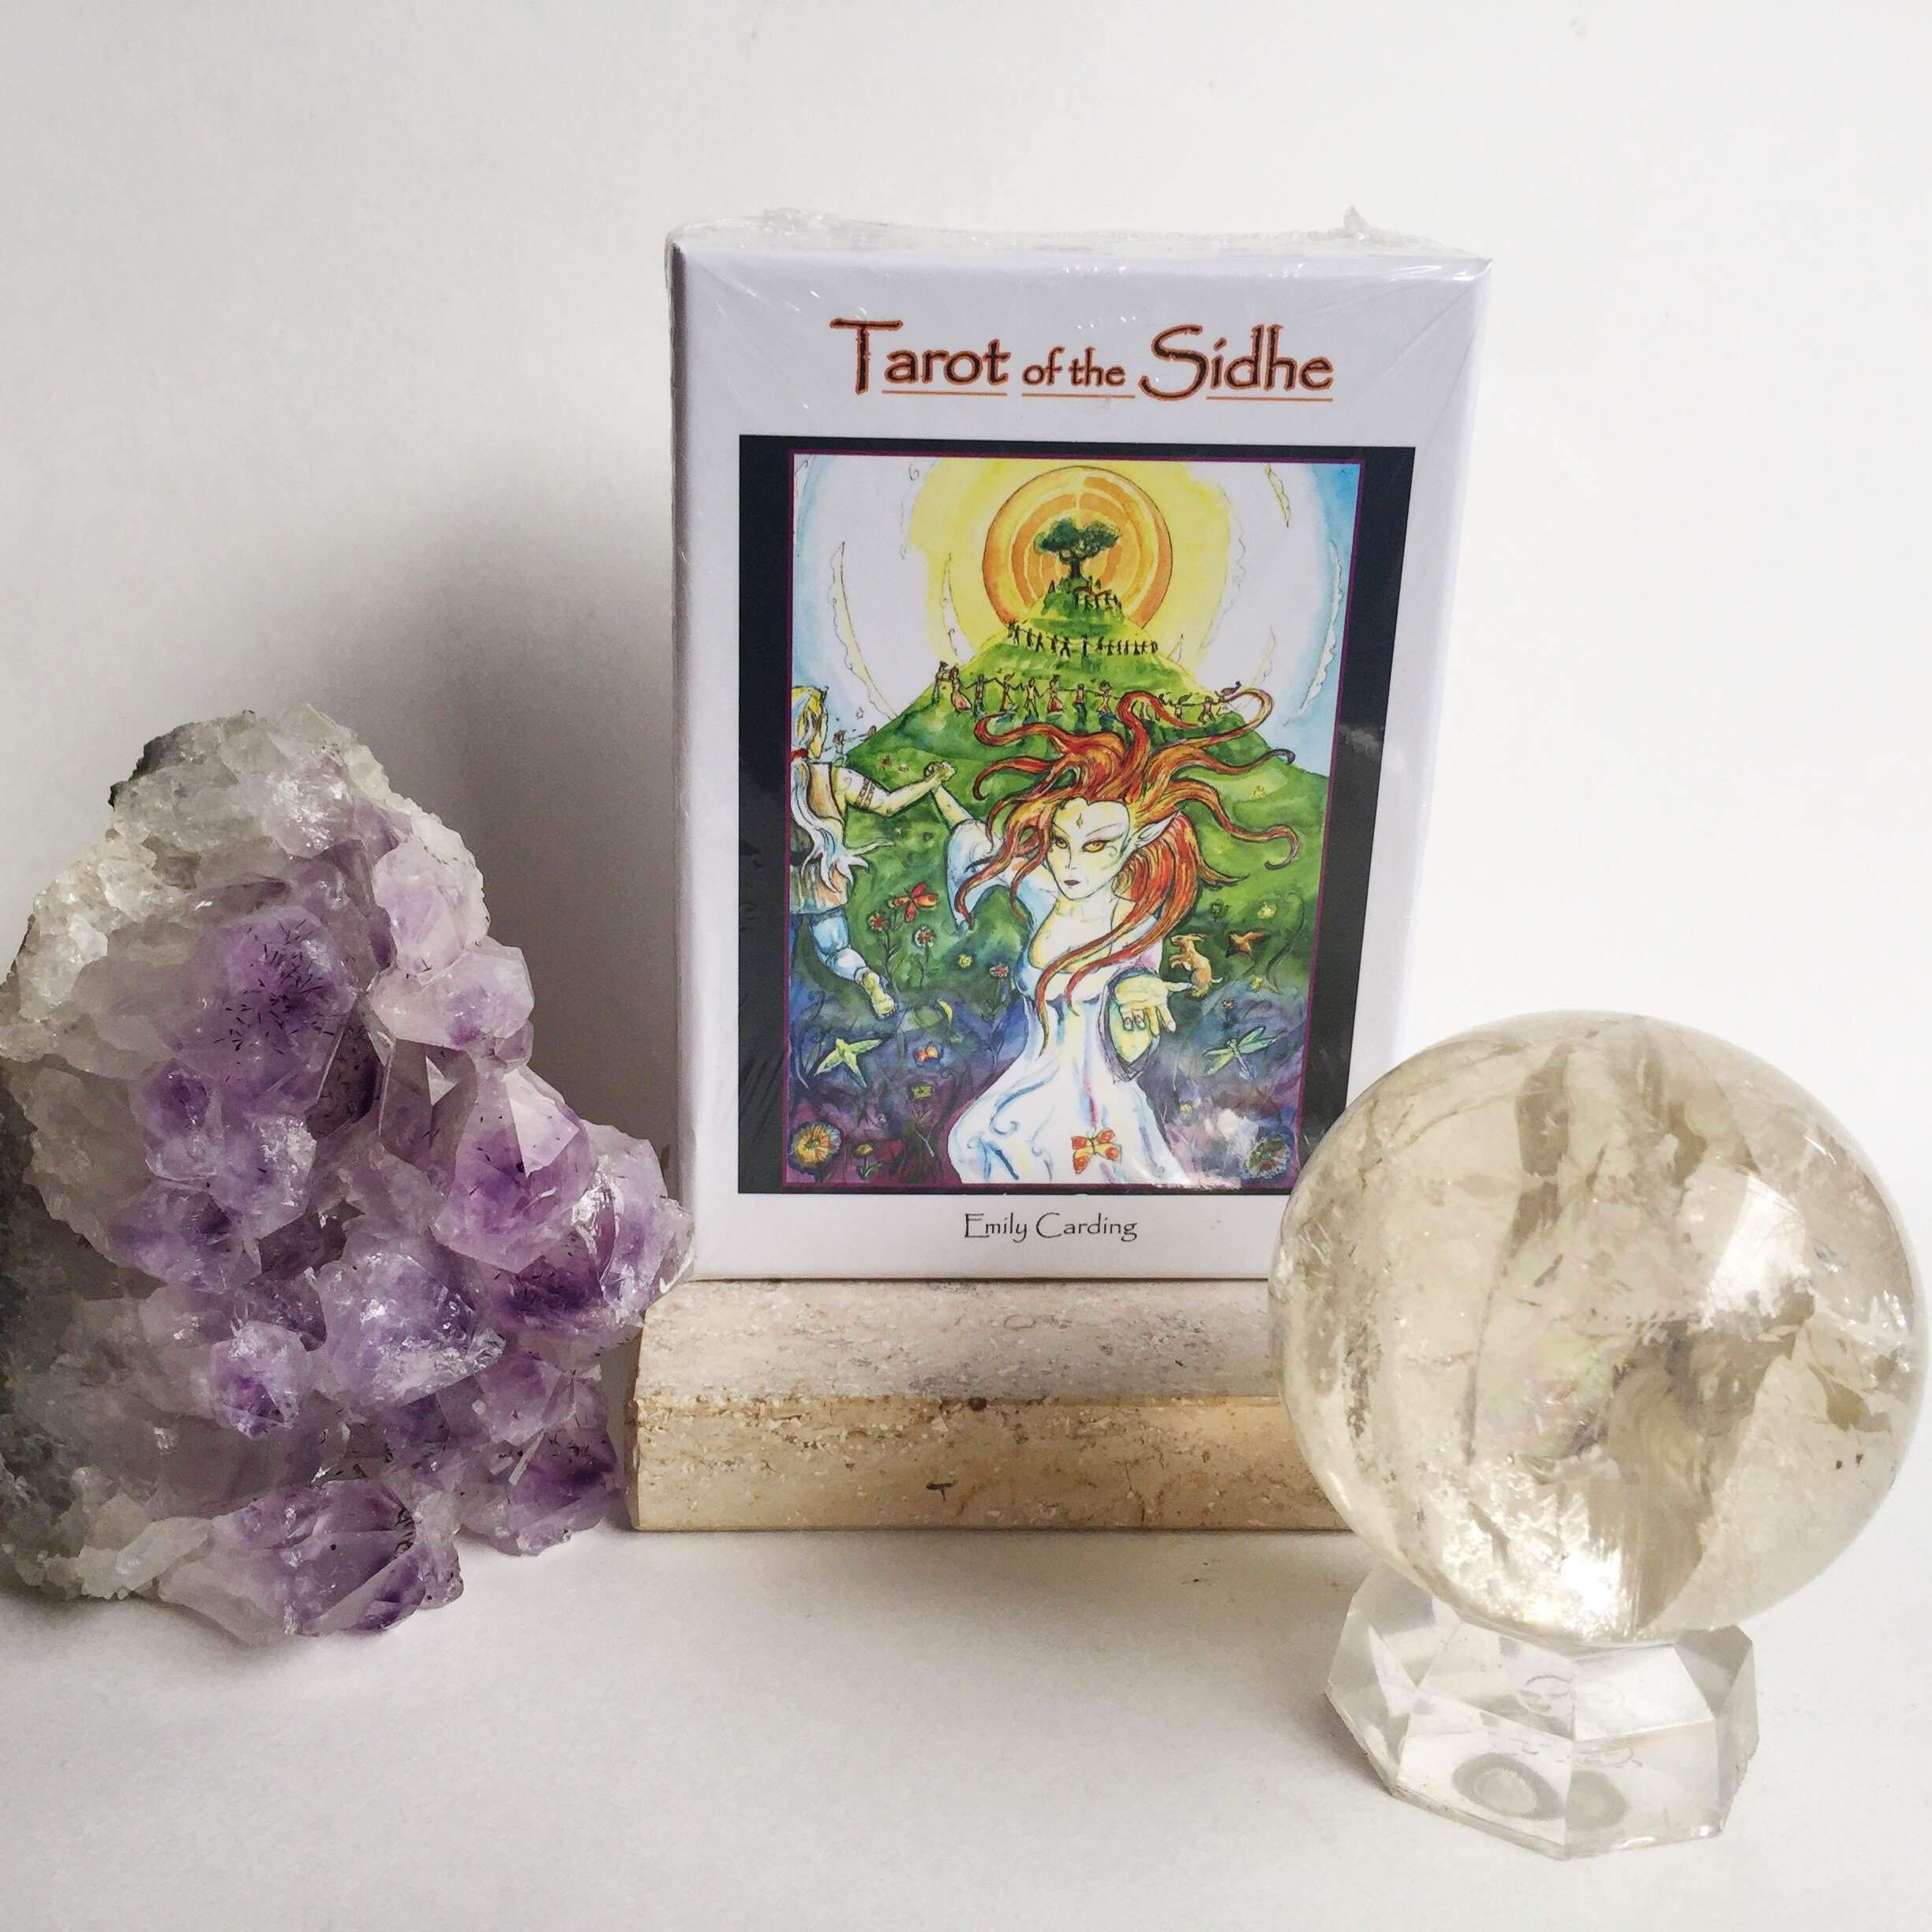 Our pick for this week! Come check out our selection of over 50 different decks. We're always searching out new and exciting tarot decks.   . . . #essentialoil  #energy  #love  #healing #health  #healthylifestyle  #detox  #local #toronto  #gifts  #torontolife  #chakra  #tarot #beautiful  #yoga  #yogi  #transformation #tranformationtuesday  #tarot  #art #handmade  #magic  #crystals #healingcrystals  #instagood  #instalike  #eo #diy